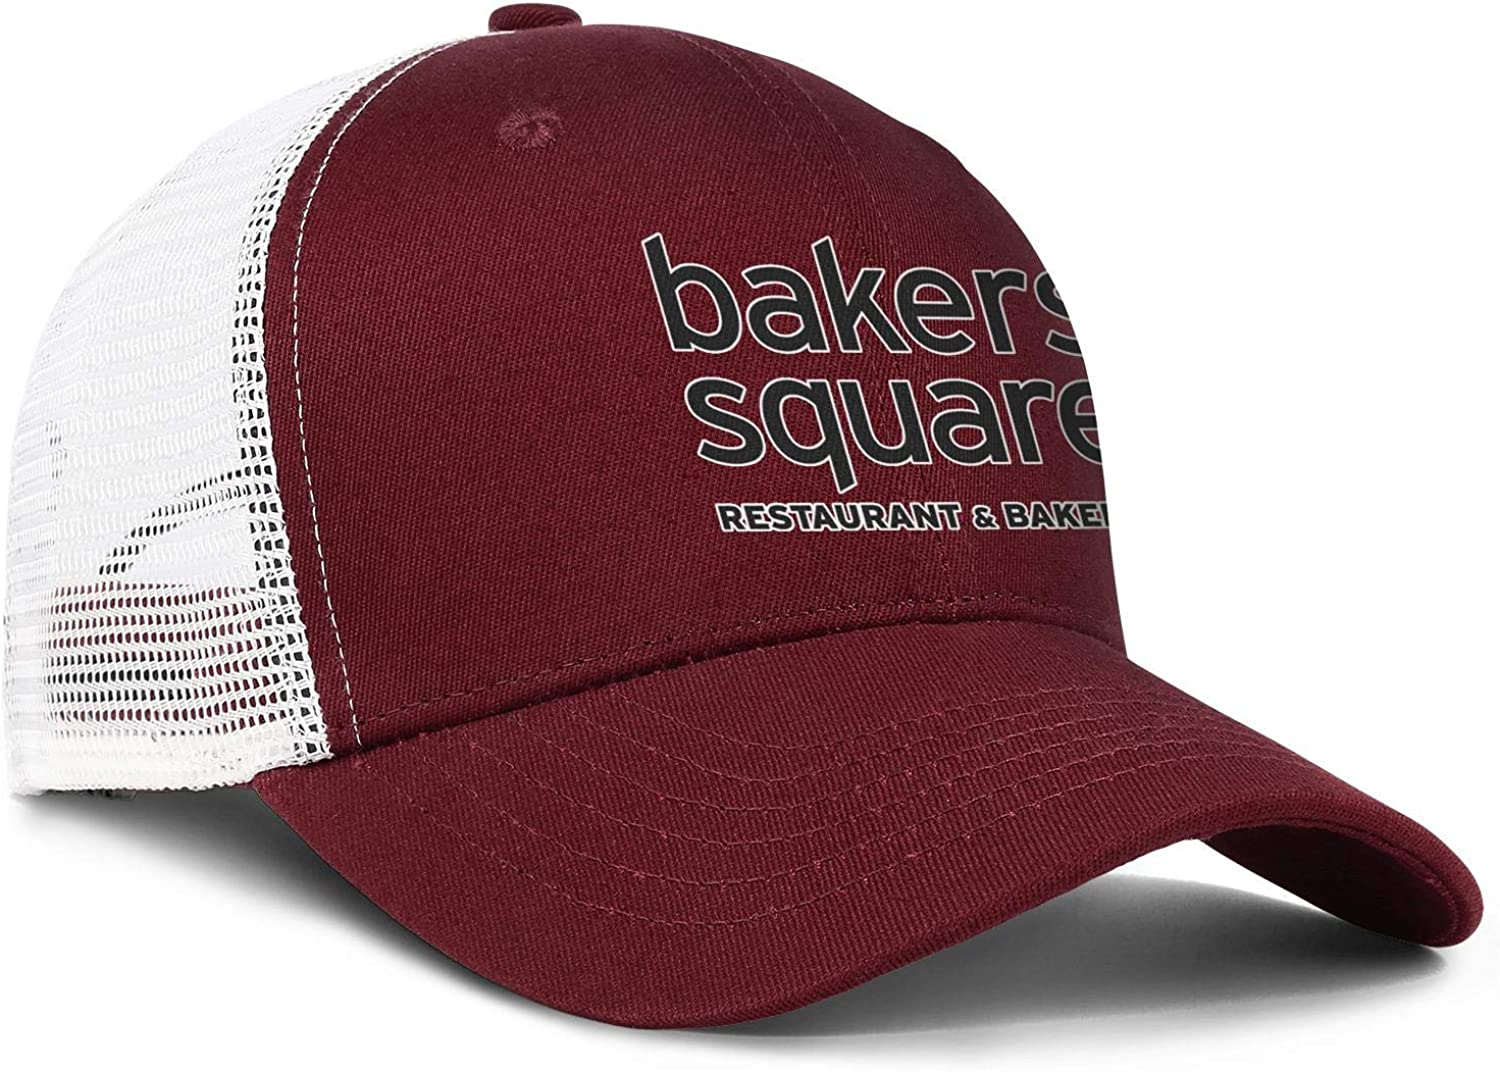 Wudo Unisex Bakers Square Hat Pretty Trucker Hat Baseball Cap Adjustable Cowboy Hat